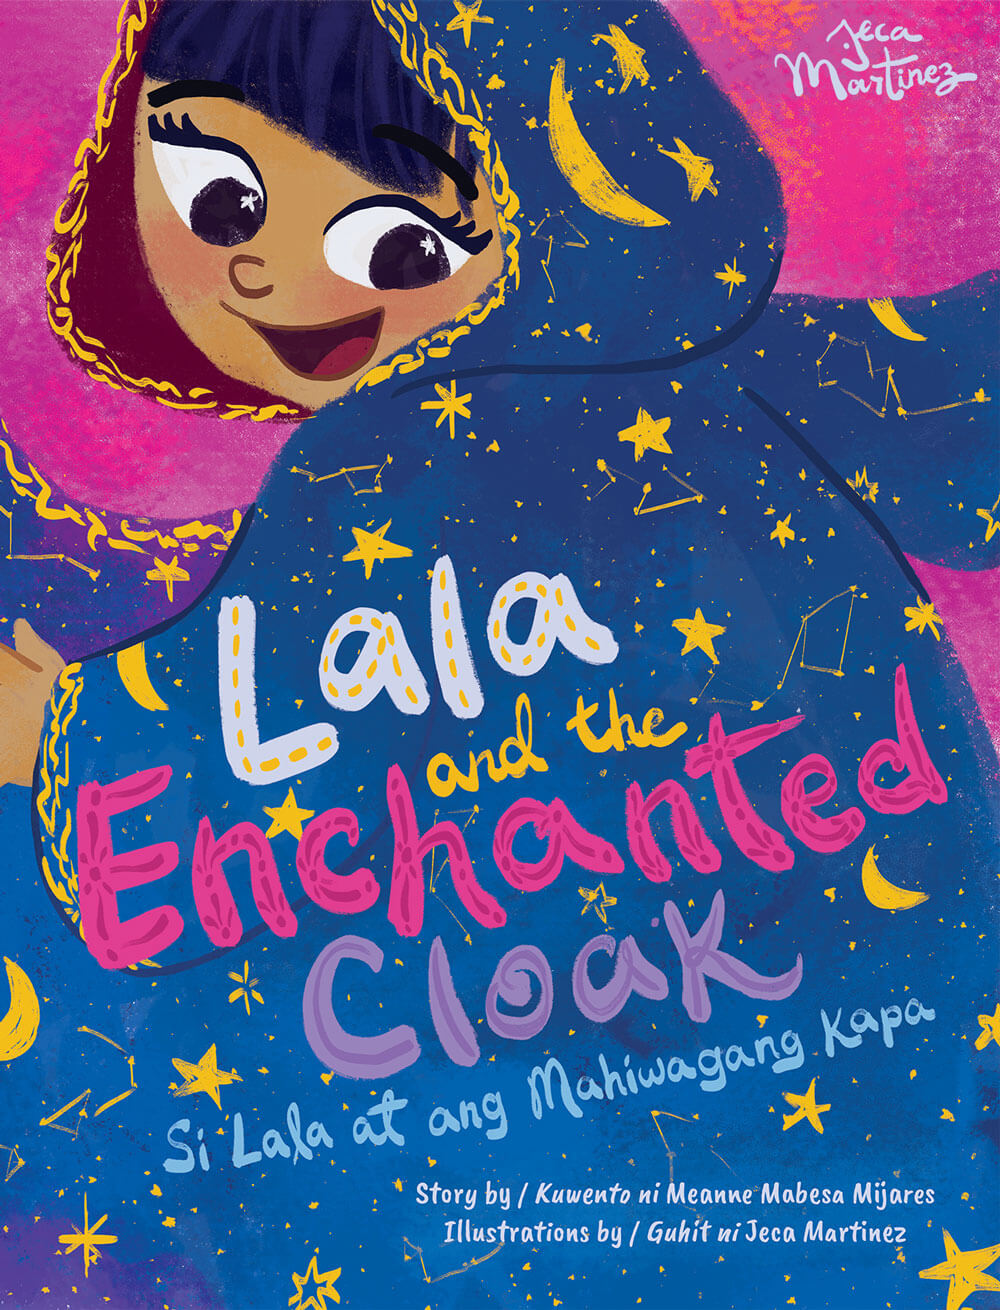 Children's Book Cover Illustration of Lala and the Enchanted Cloak for Vibal Publishing by Jeca Martinez.jpg